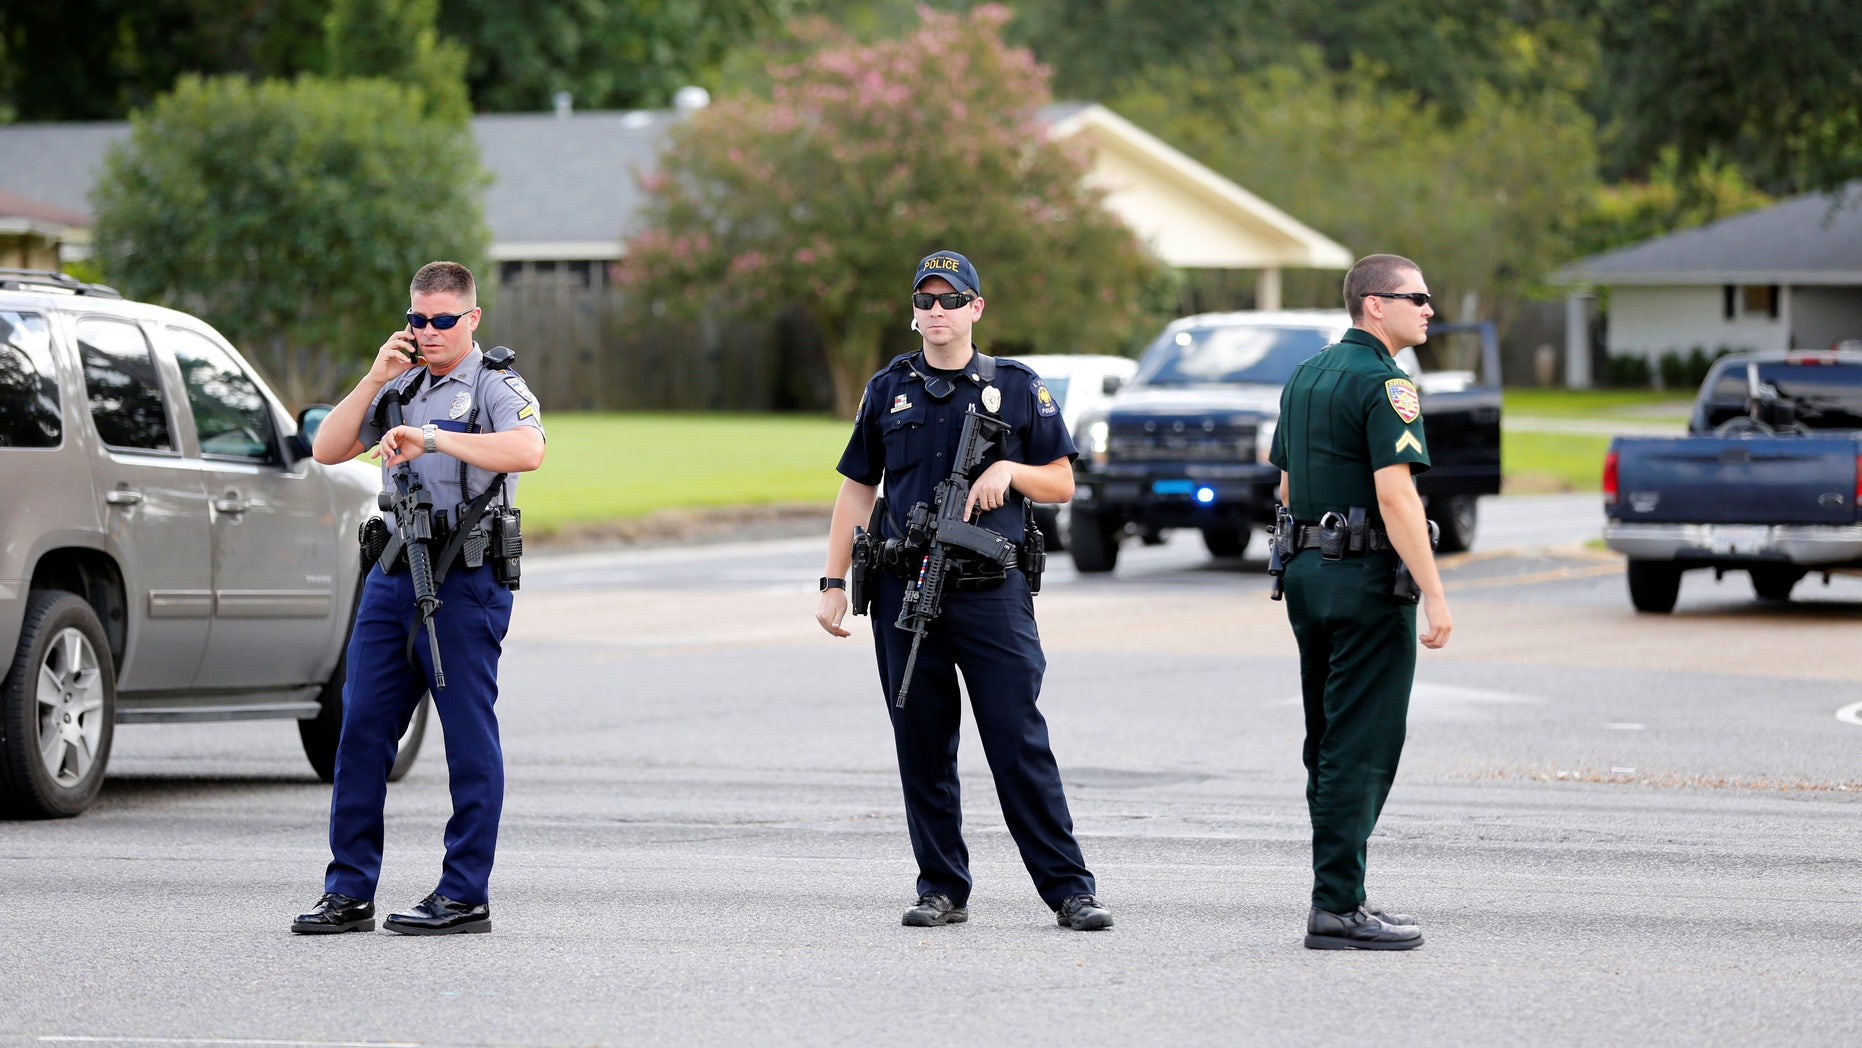 Police officers block off a road after a shooting of police in Baton Rouge, Louisiana, U.S. July 17, 2016.  REUTERS/Joe Penney - RTSIE5M